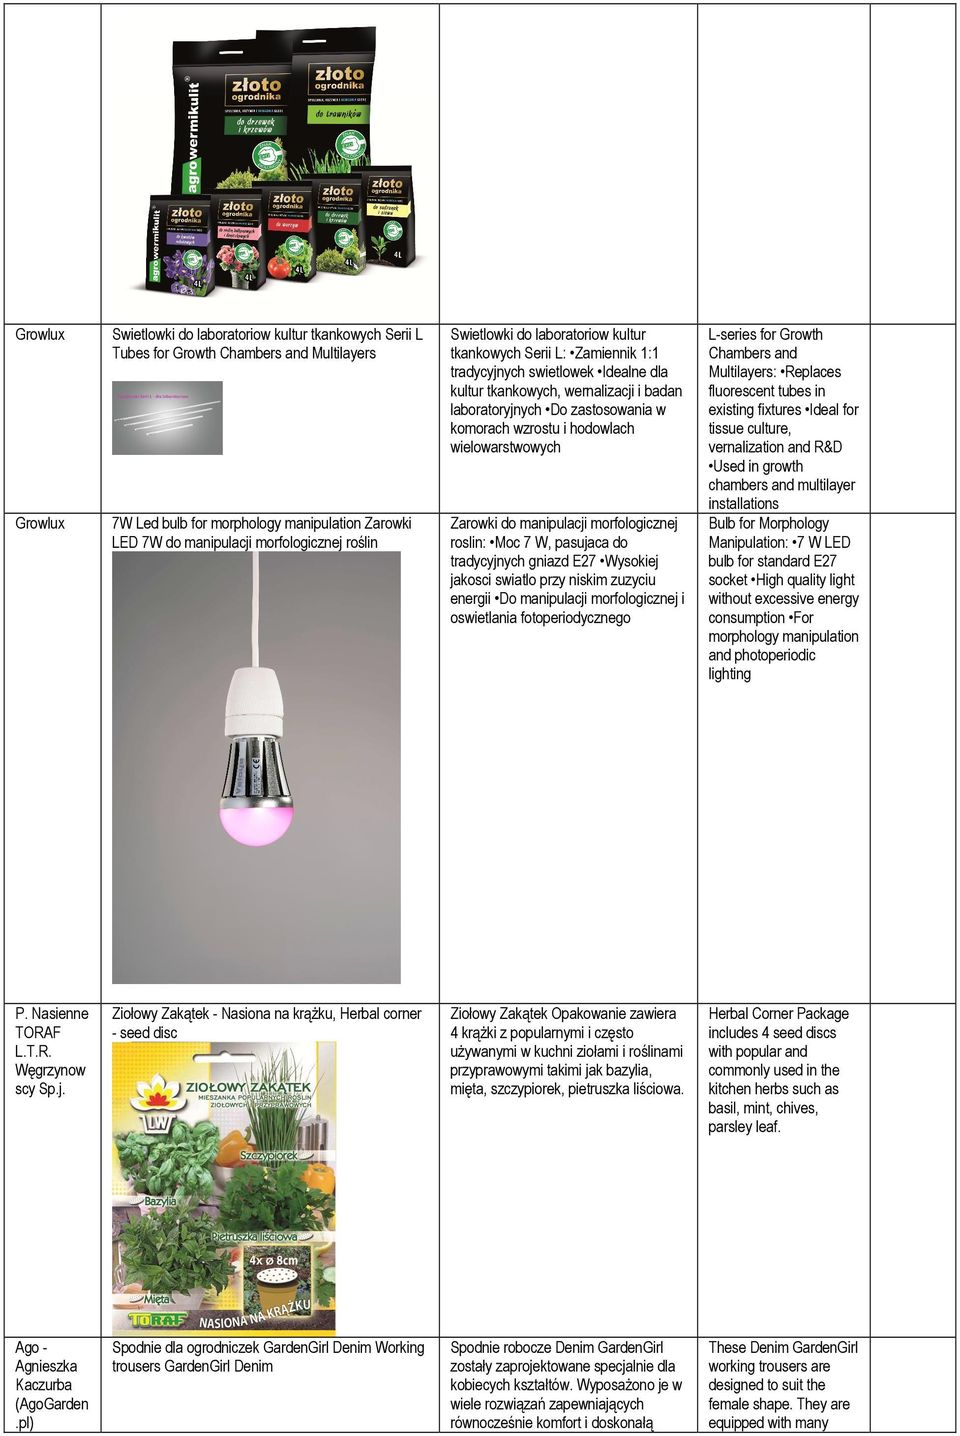 tubes in existing fixtures Ideal for tissue culture, vernalization and R&D Used in growth chambers and multilayer installations Bulb for Morphology Manipulation: 7 W LED bulb for standard E27 socket